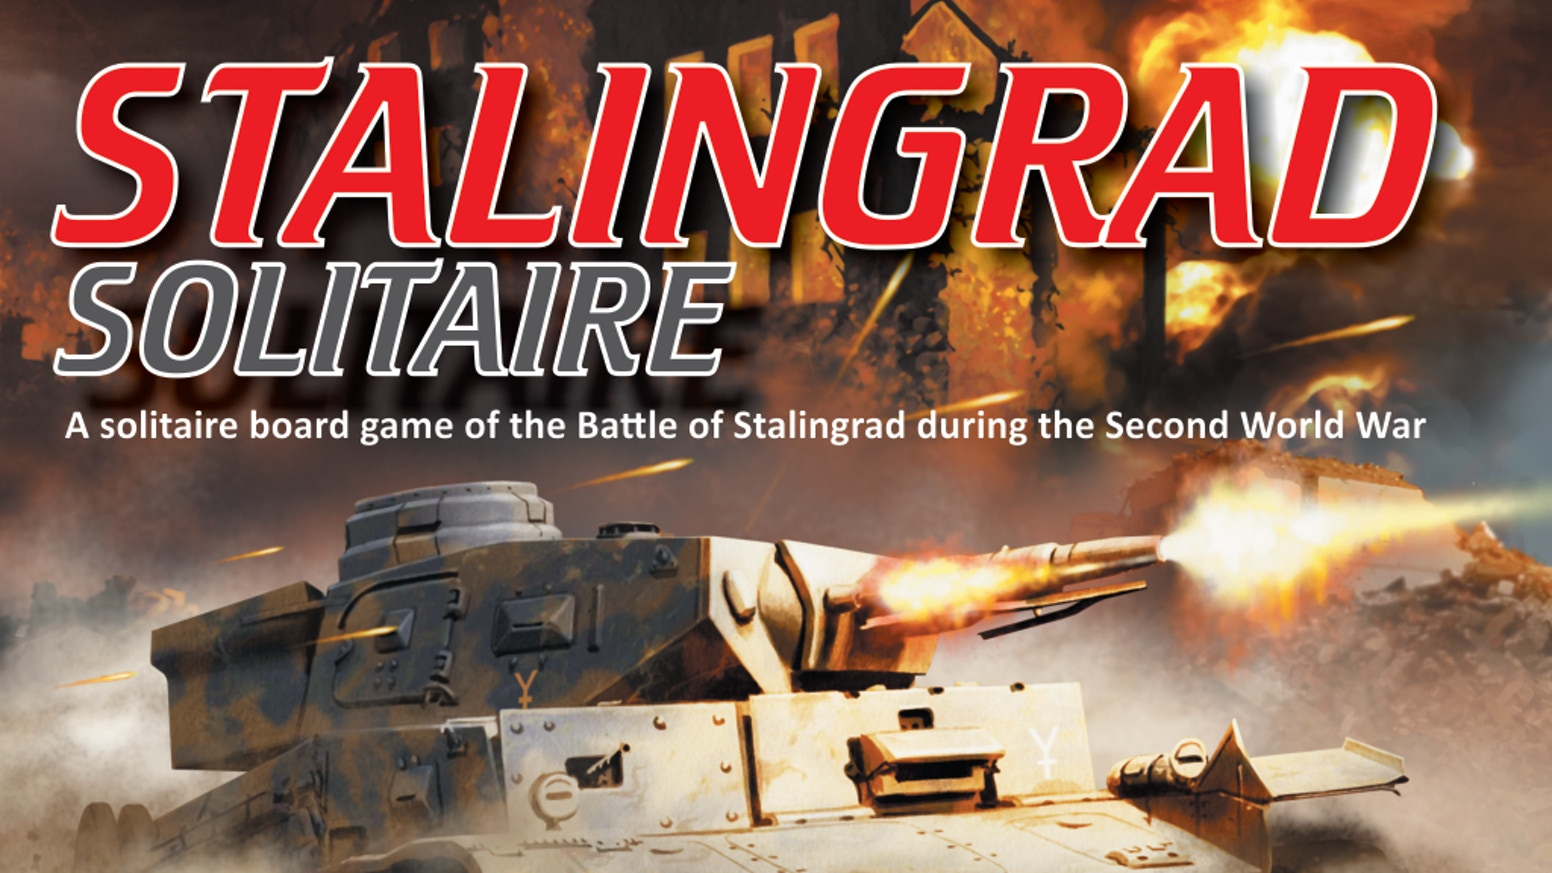 A solitaire board game of the Battle of Stalingrad during the Second World War